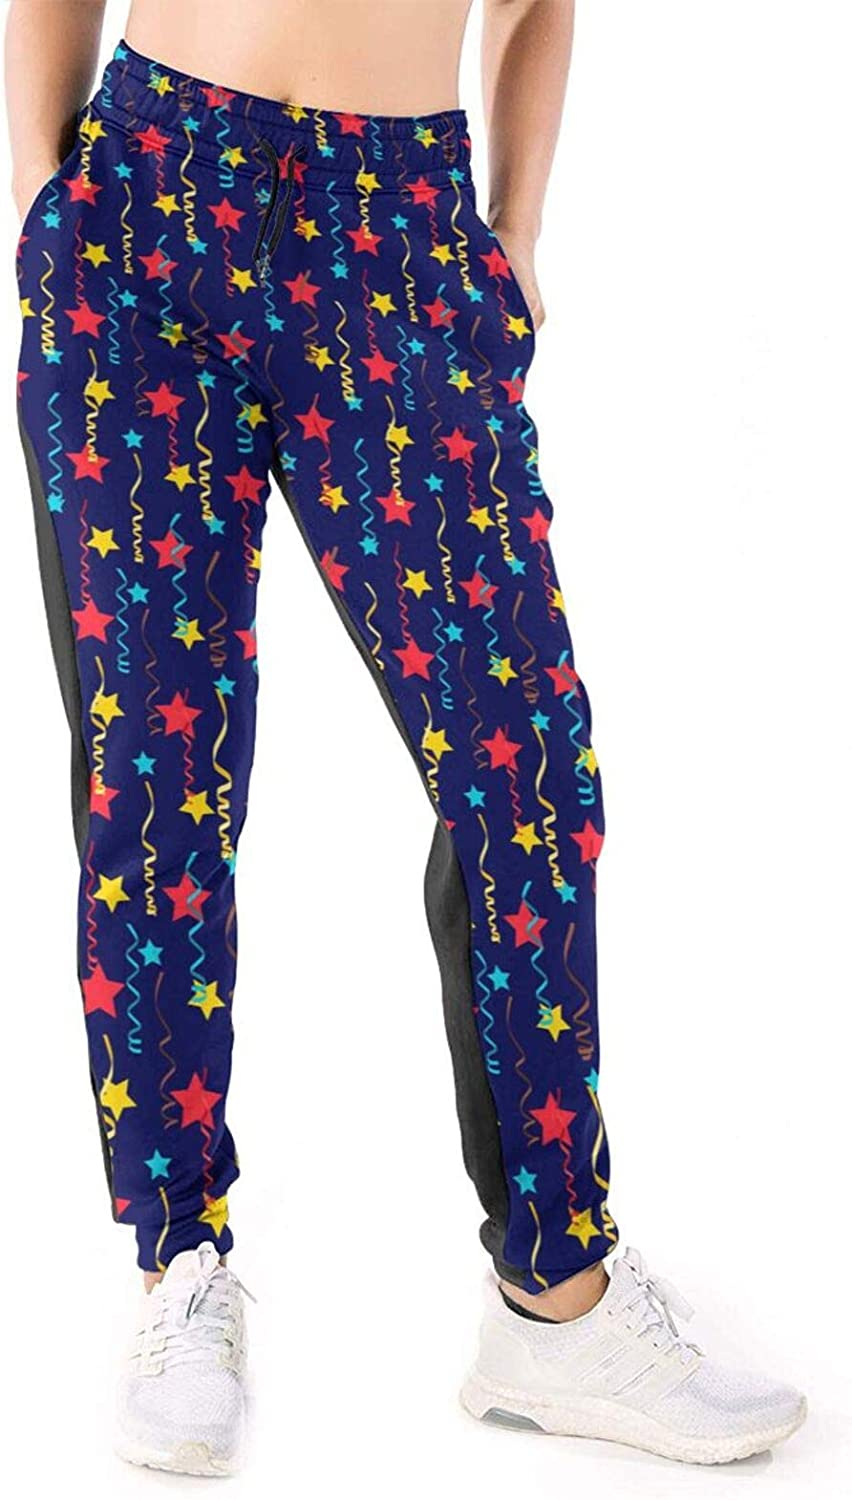 LONEA Women Joggers Pants Festive Stars and Serpentine Pattern Athletic Sweatpants with Pockets Casual Trousers Baggy